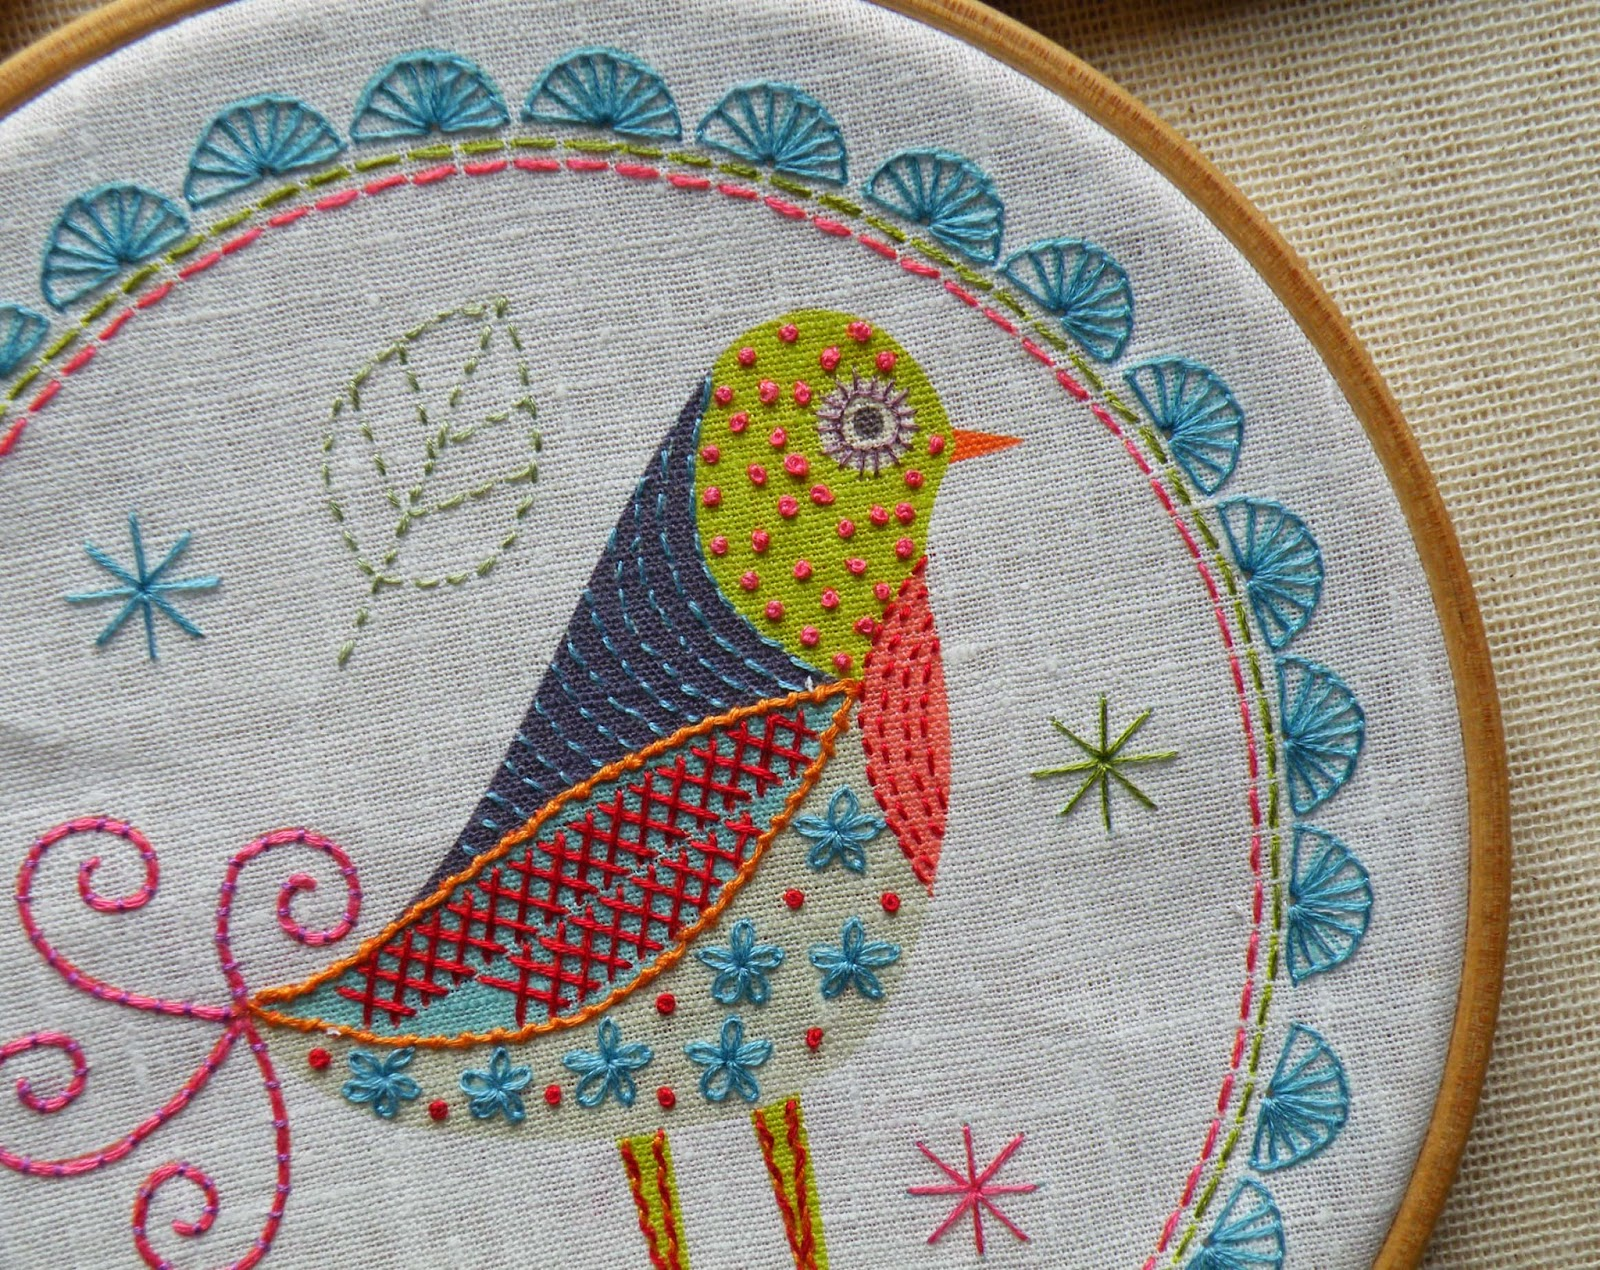 Detail of Birdie 1 Embroidery KIt